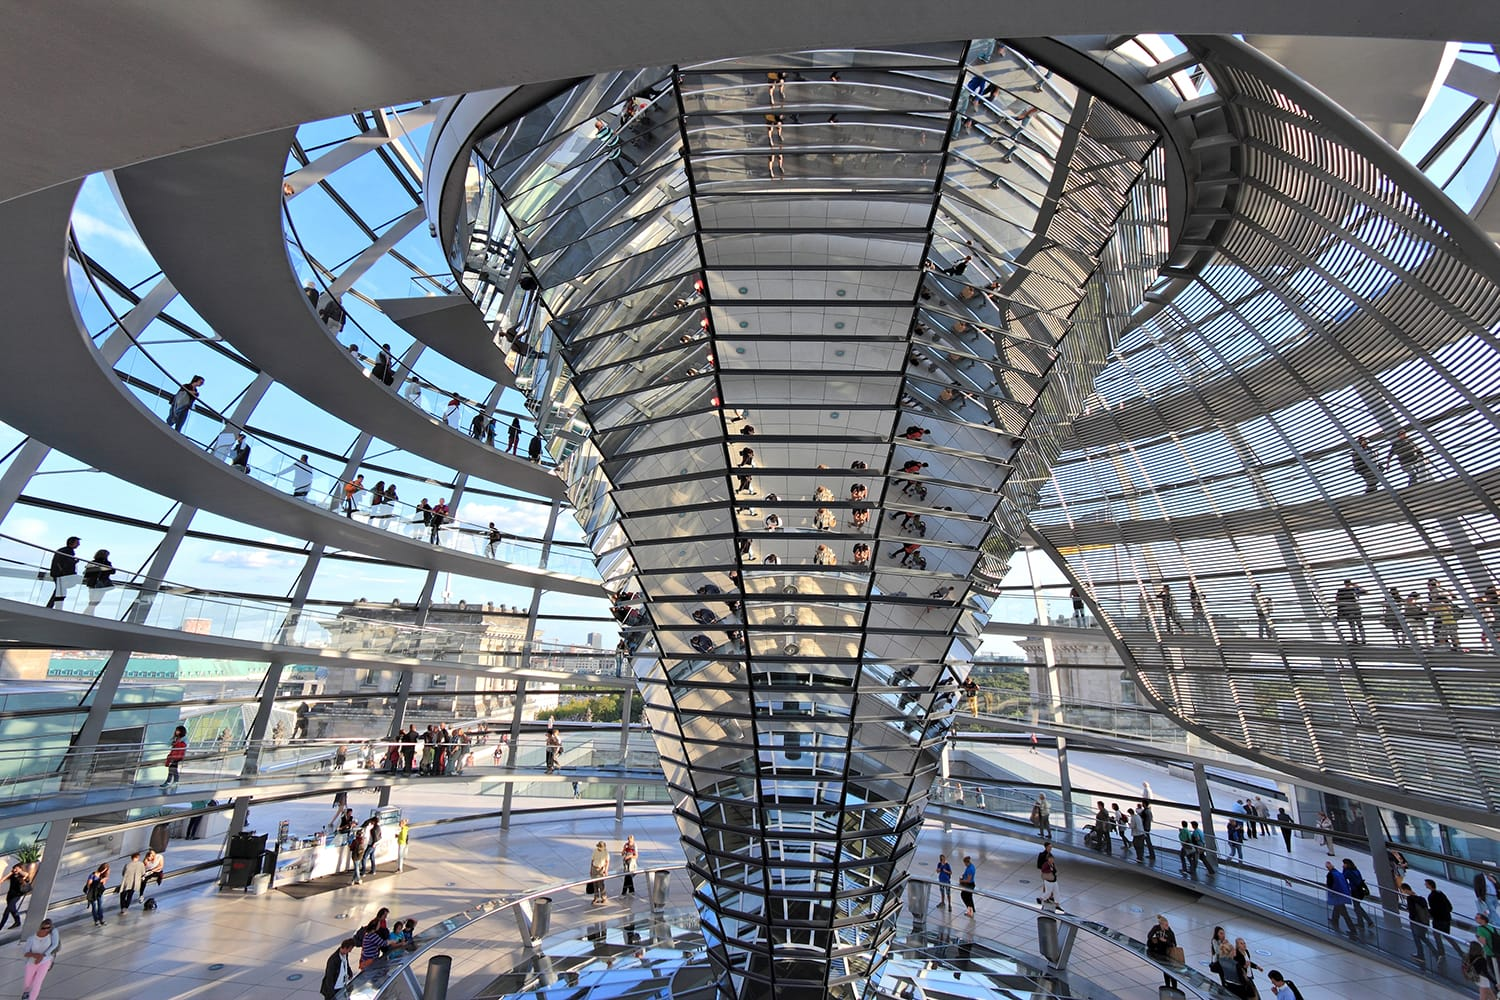 People visiting Reichstag building dome in Berlin